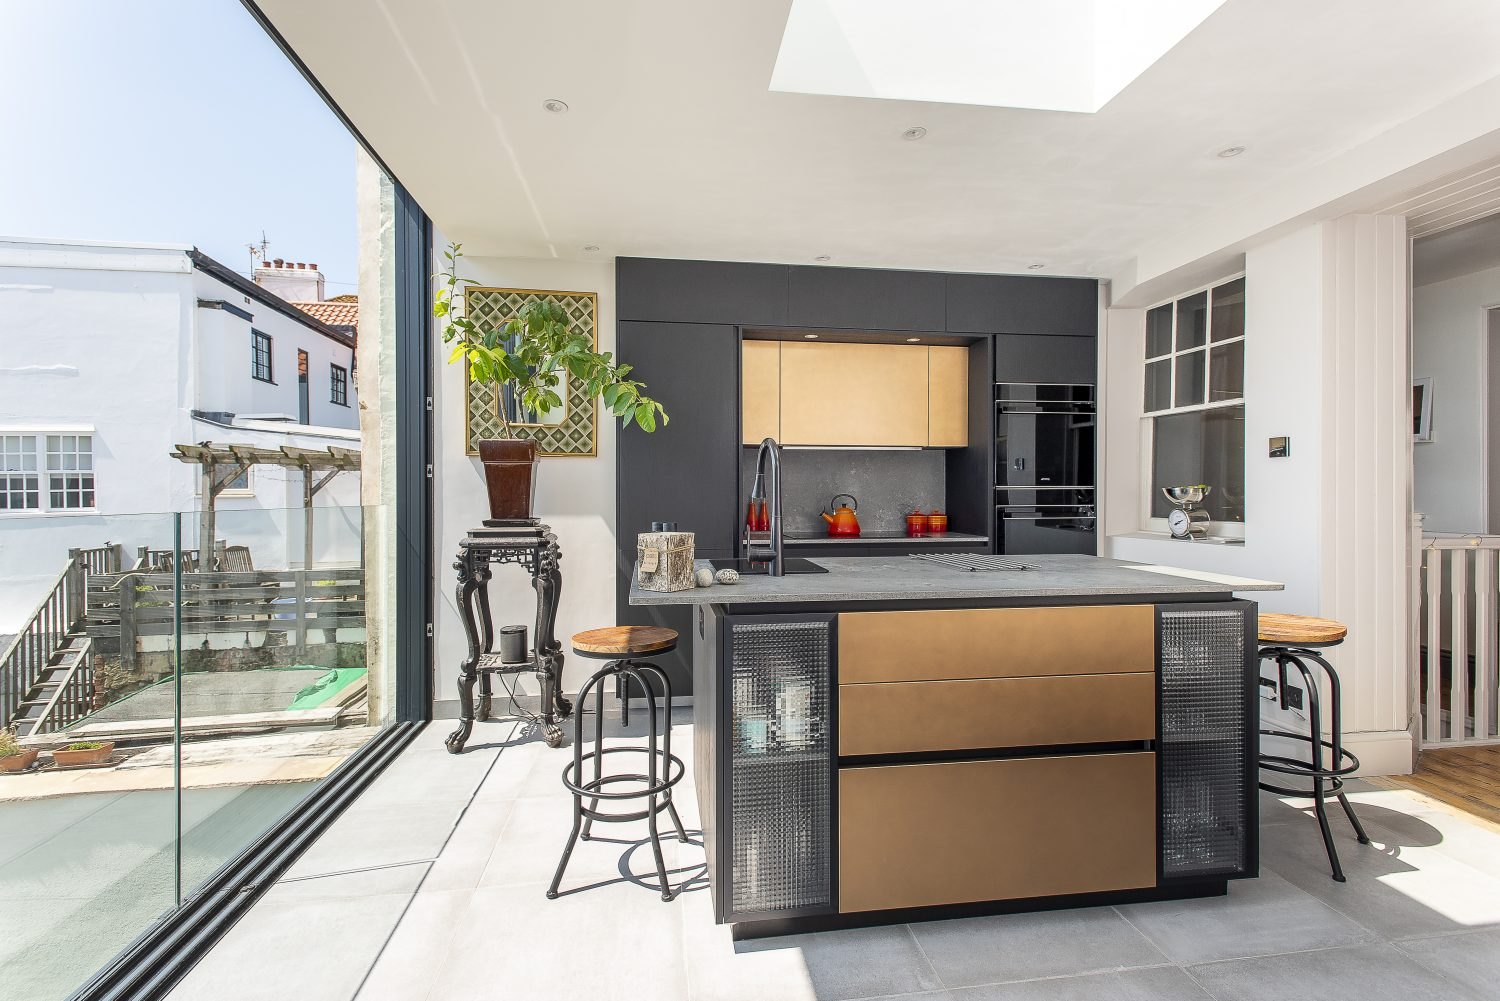 The Italian Doimo kitchen is streamlined and understated, serving as much as an entertaining space as a functional kitchen. The units are black wood and brass, with counter tops and splash backs in polished concrete and Smeg appliances